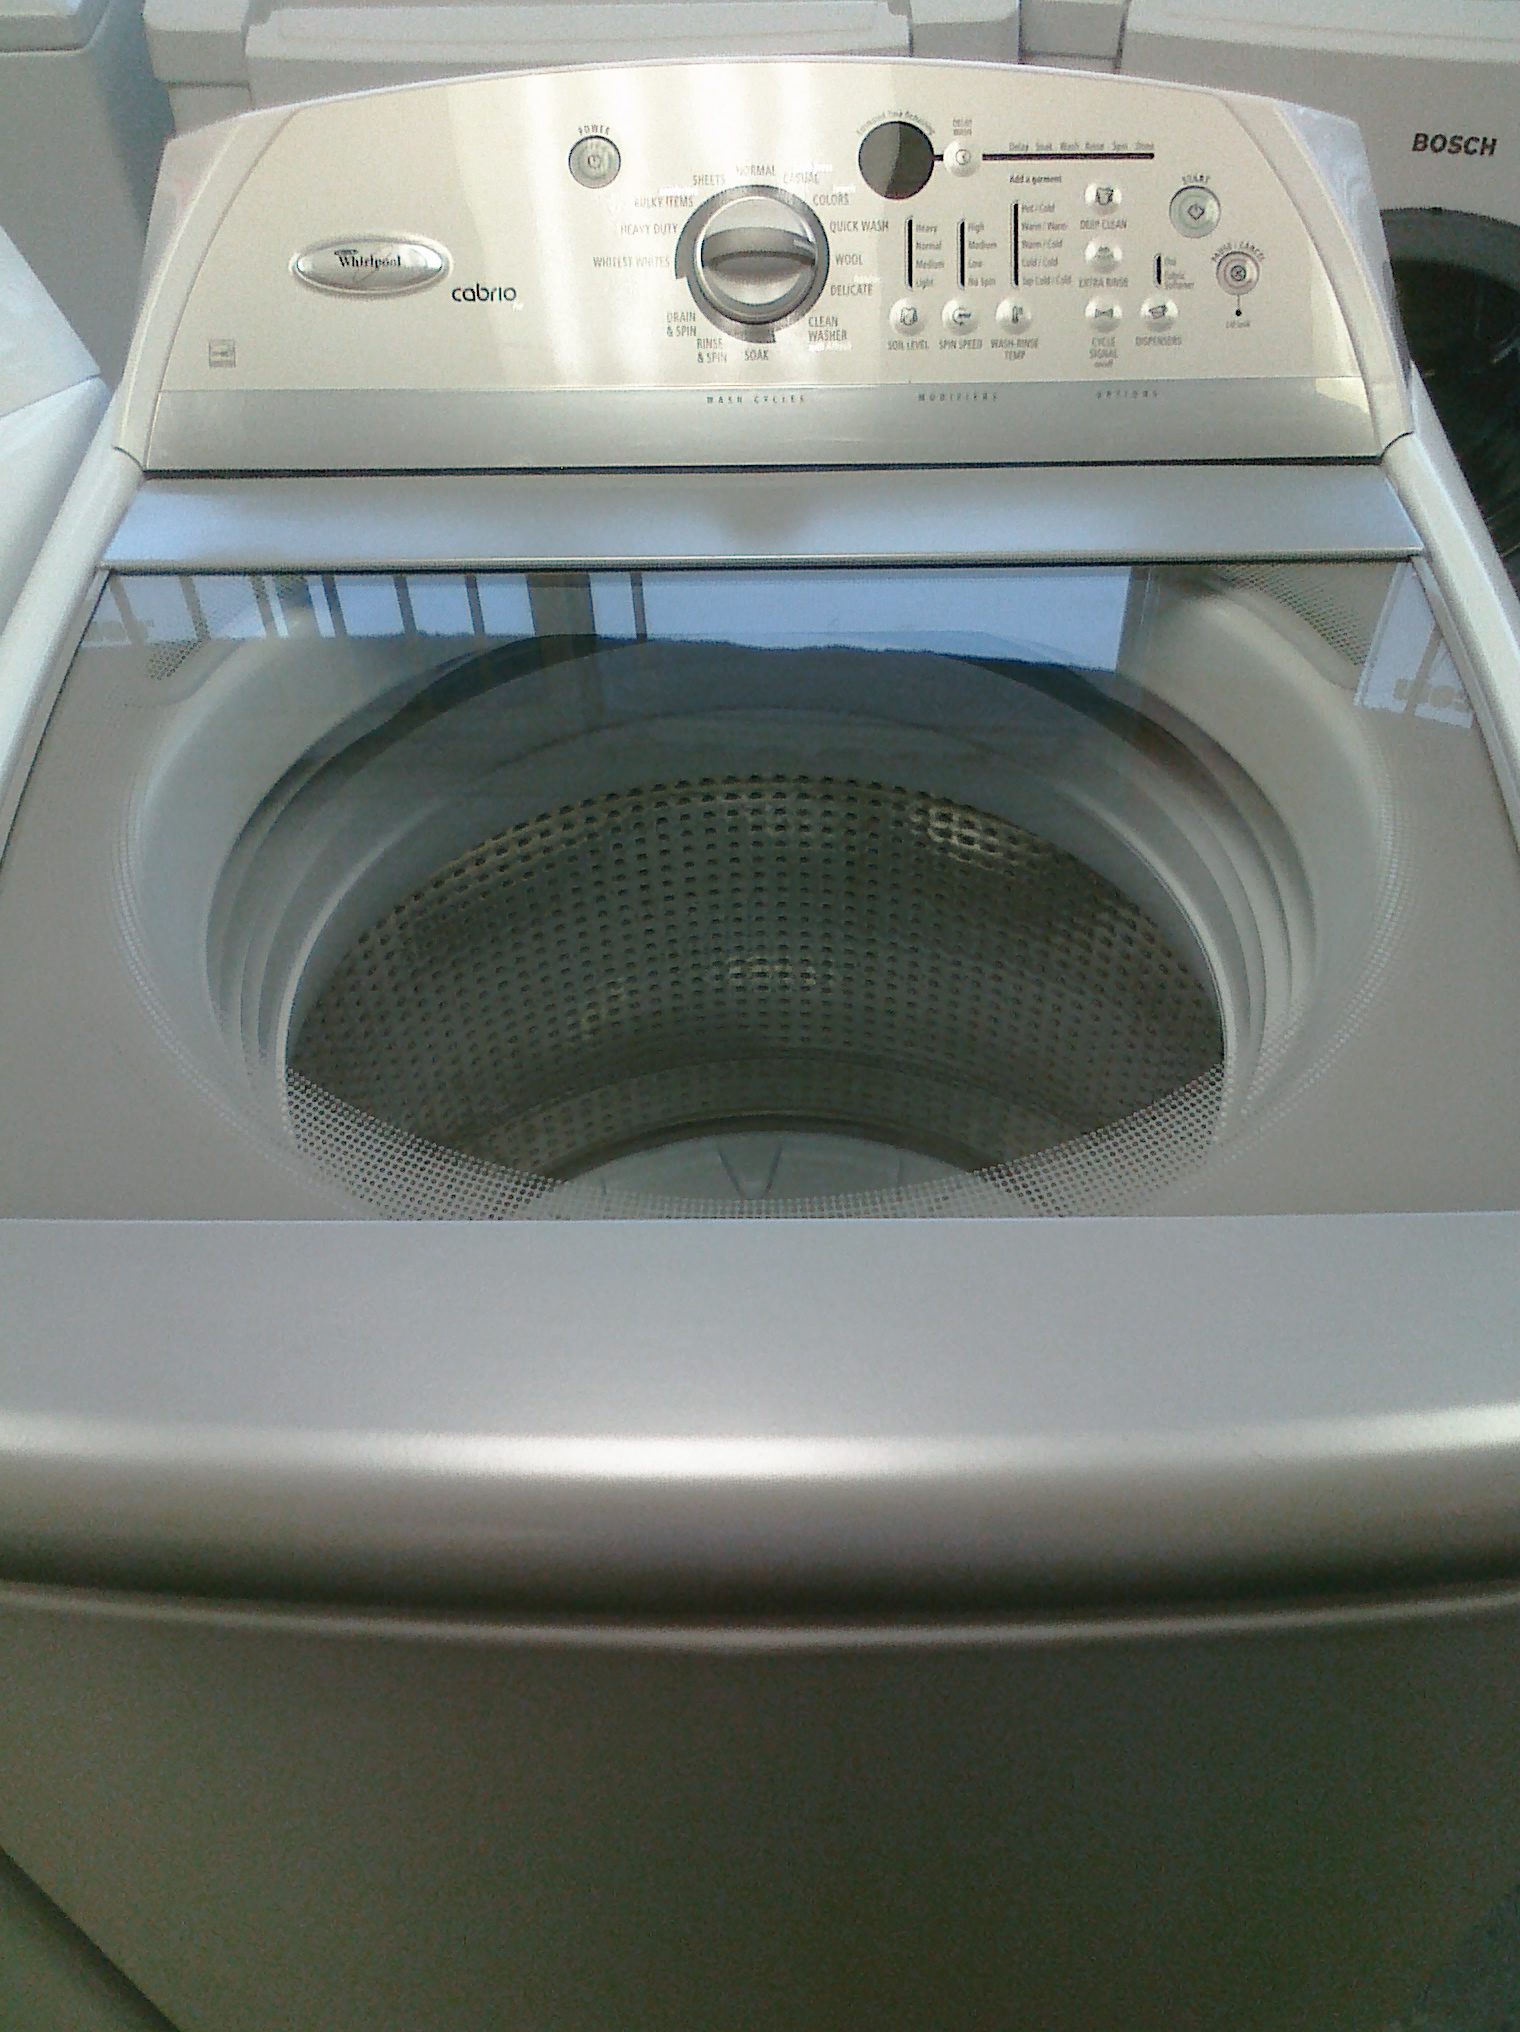 9 Whirlpool Wtw6800ww Cabrio Energy Star Top Load Washer With